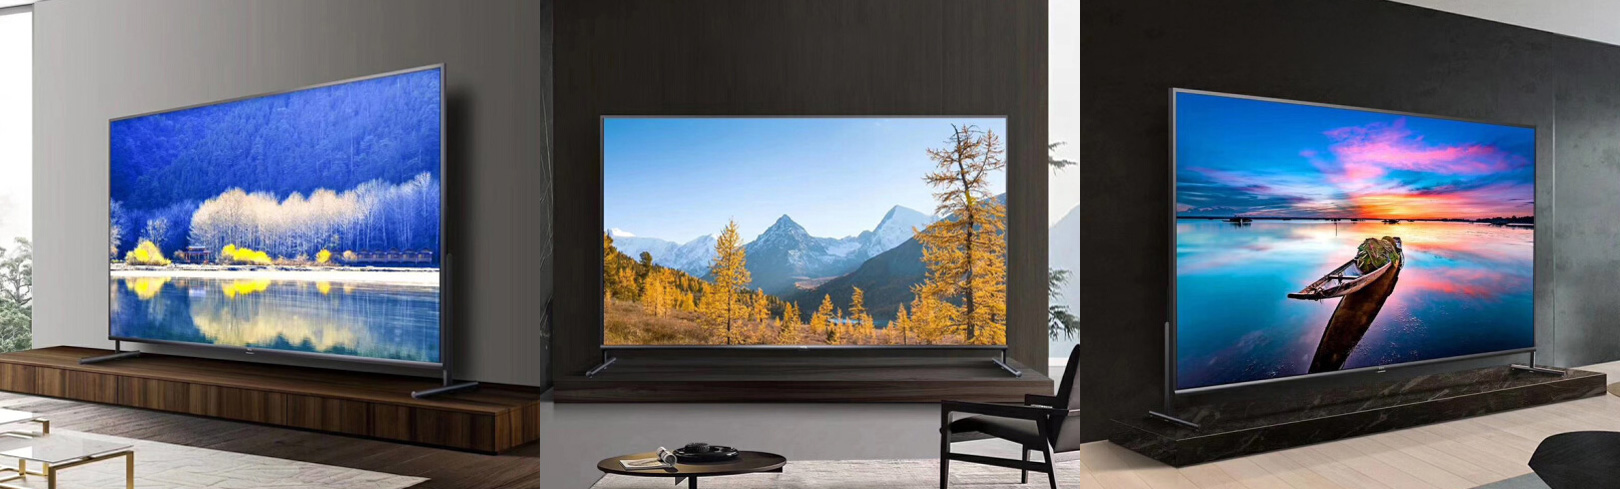 TCL 100X6C, TCL 85X6C, TCL 85X9 QLED and the TCL 75C10 Dual Screen QLED TV get previewed in China